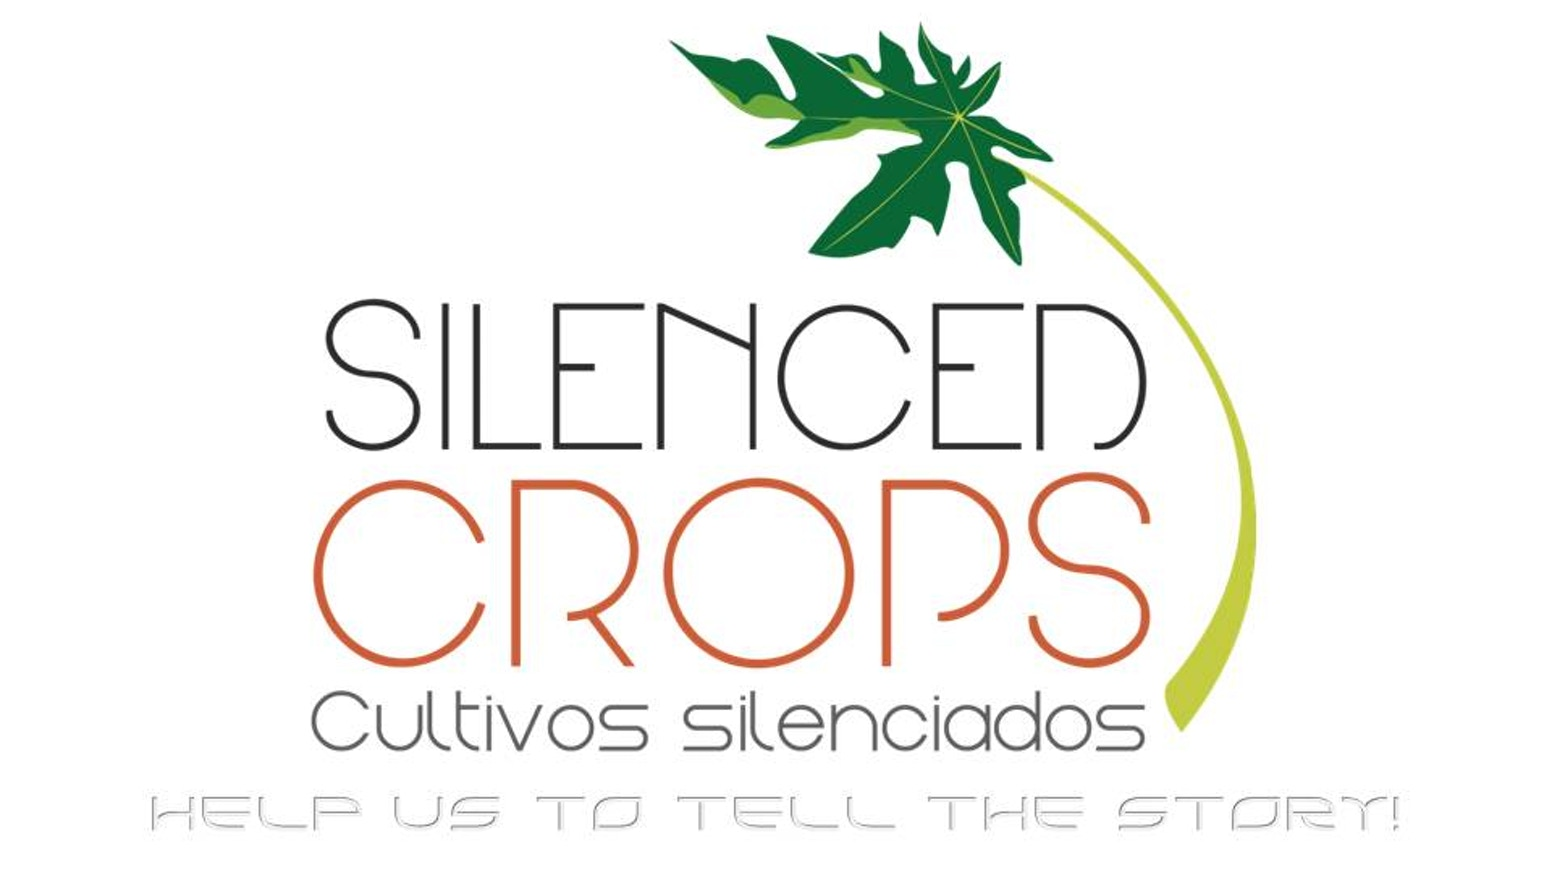 Let us tell the story of the Venezuelan farmers and scientists who developed innovative crops but could never see them grow.